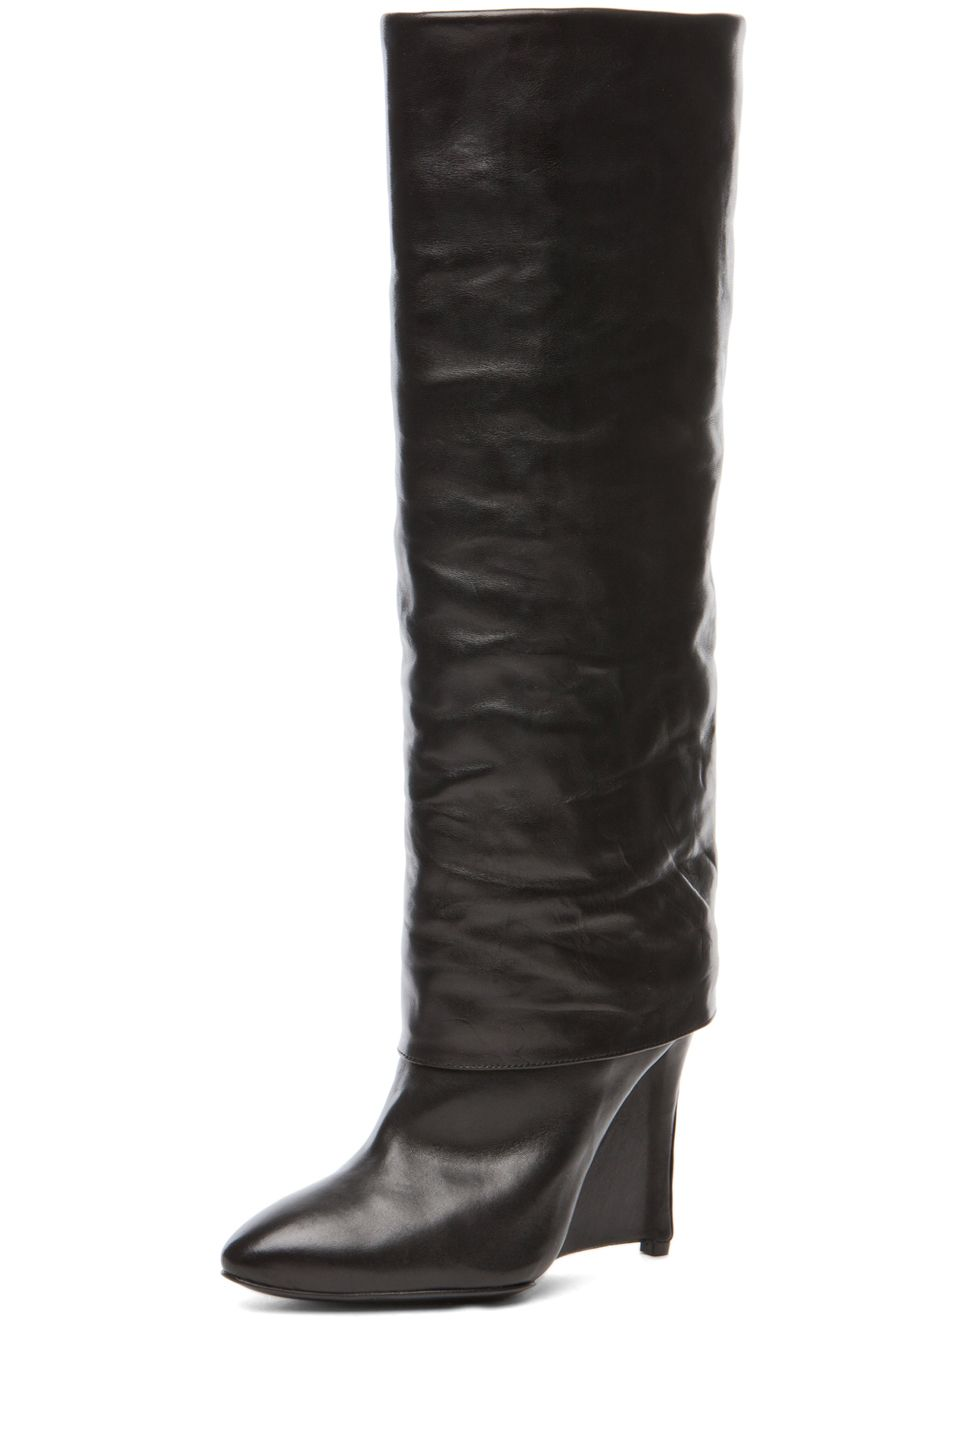 A totally posh Plan B look to the SOLD OUT  Givenchy Sheath boot.